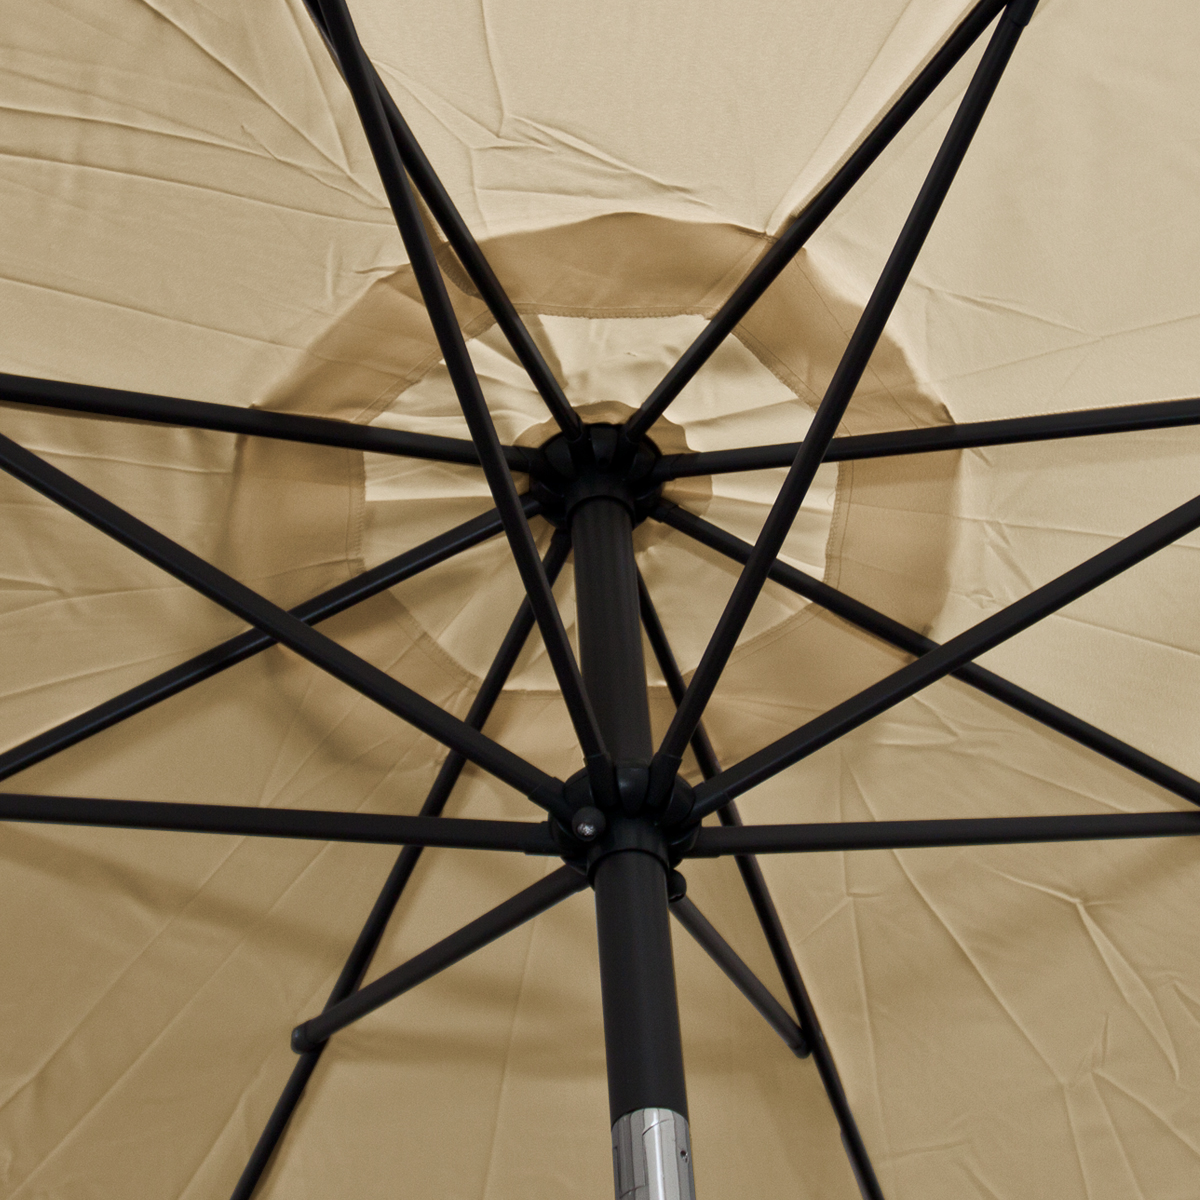 Patio Umbrella Replacement Canopy: Patio Market Outdoor 9 FT 8 Ribs Umbrella Cover Canopy Tan